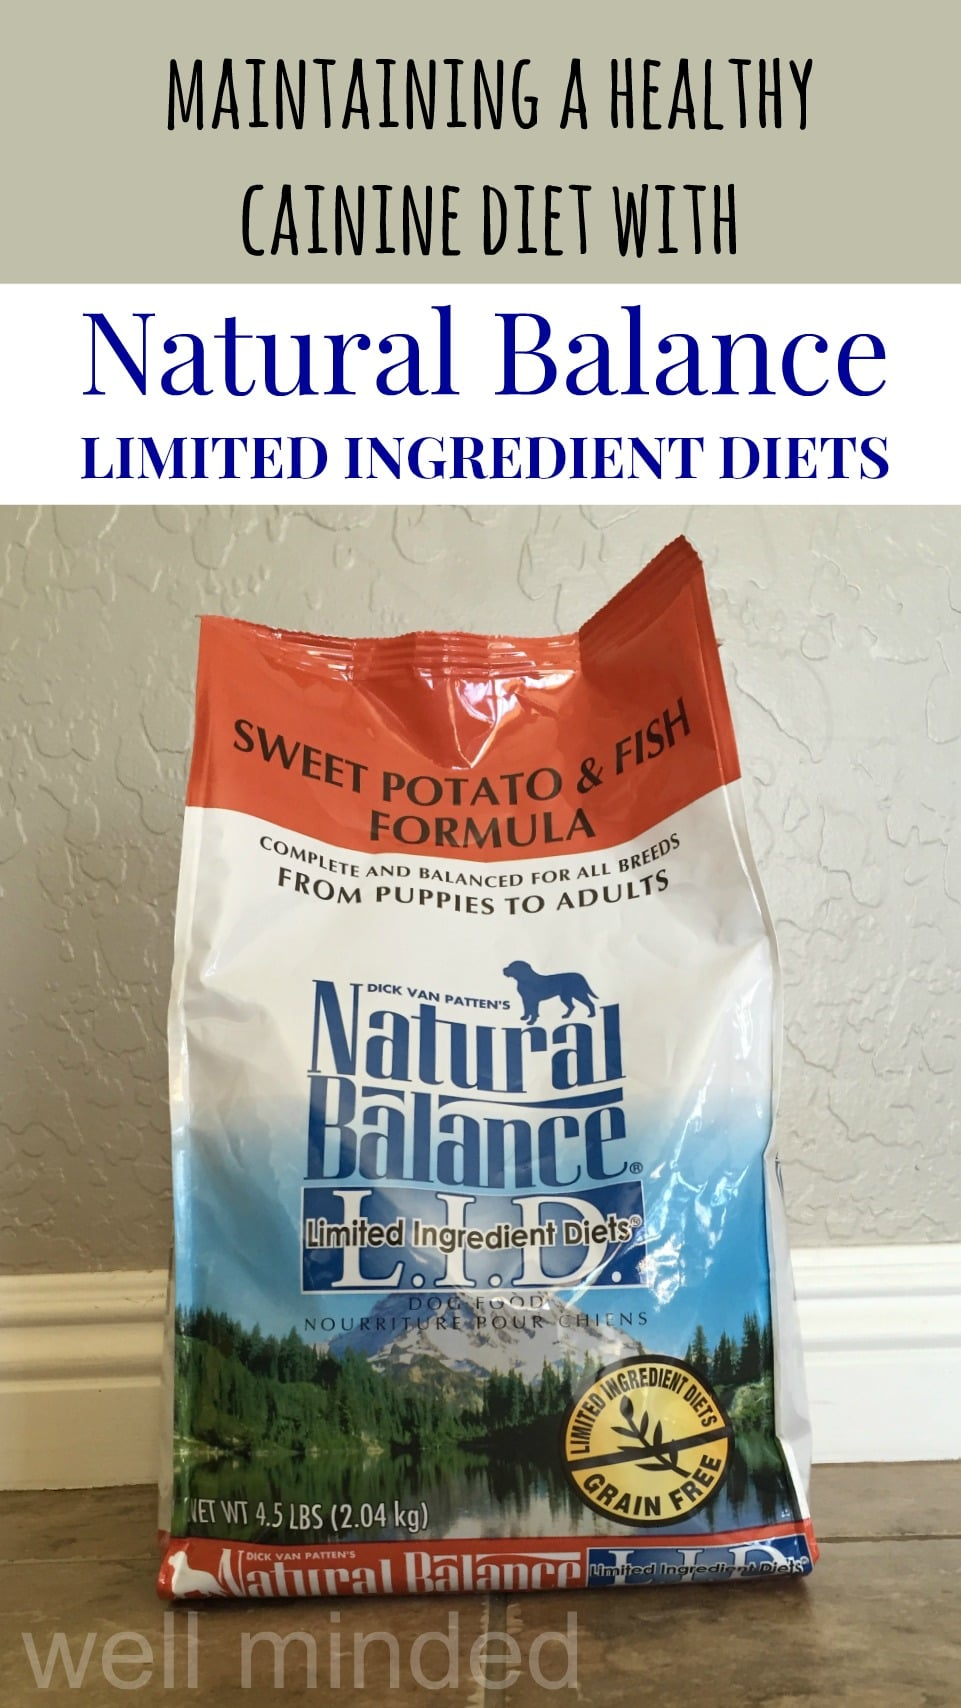 Maintaining a Healthy canine diet with Natural Balance Limited Ingredient Diets–well minded